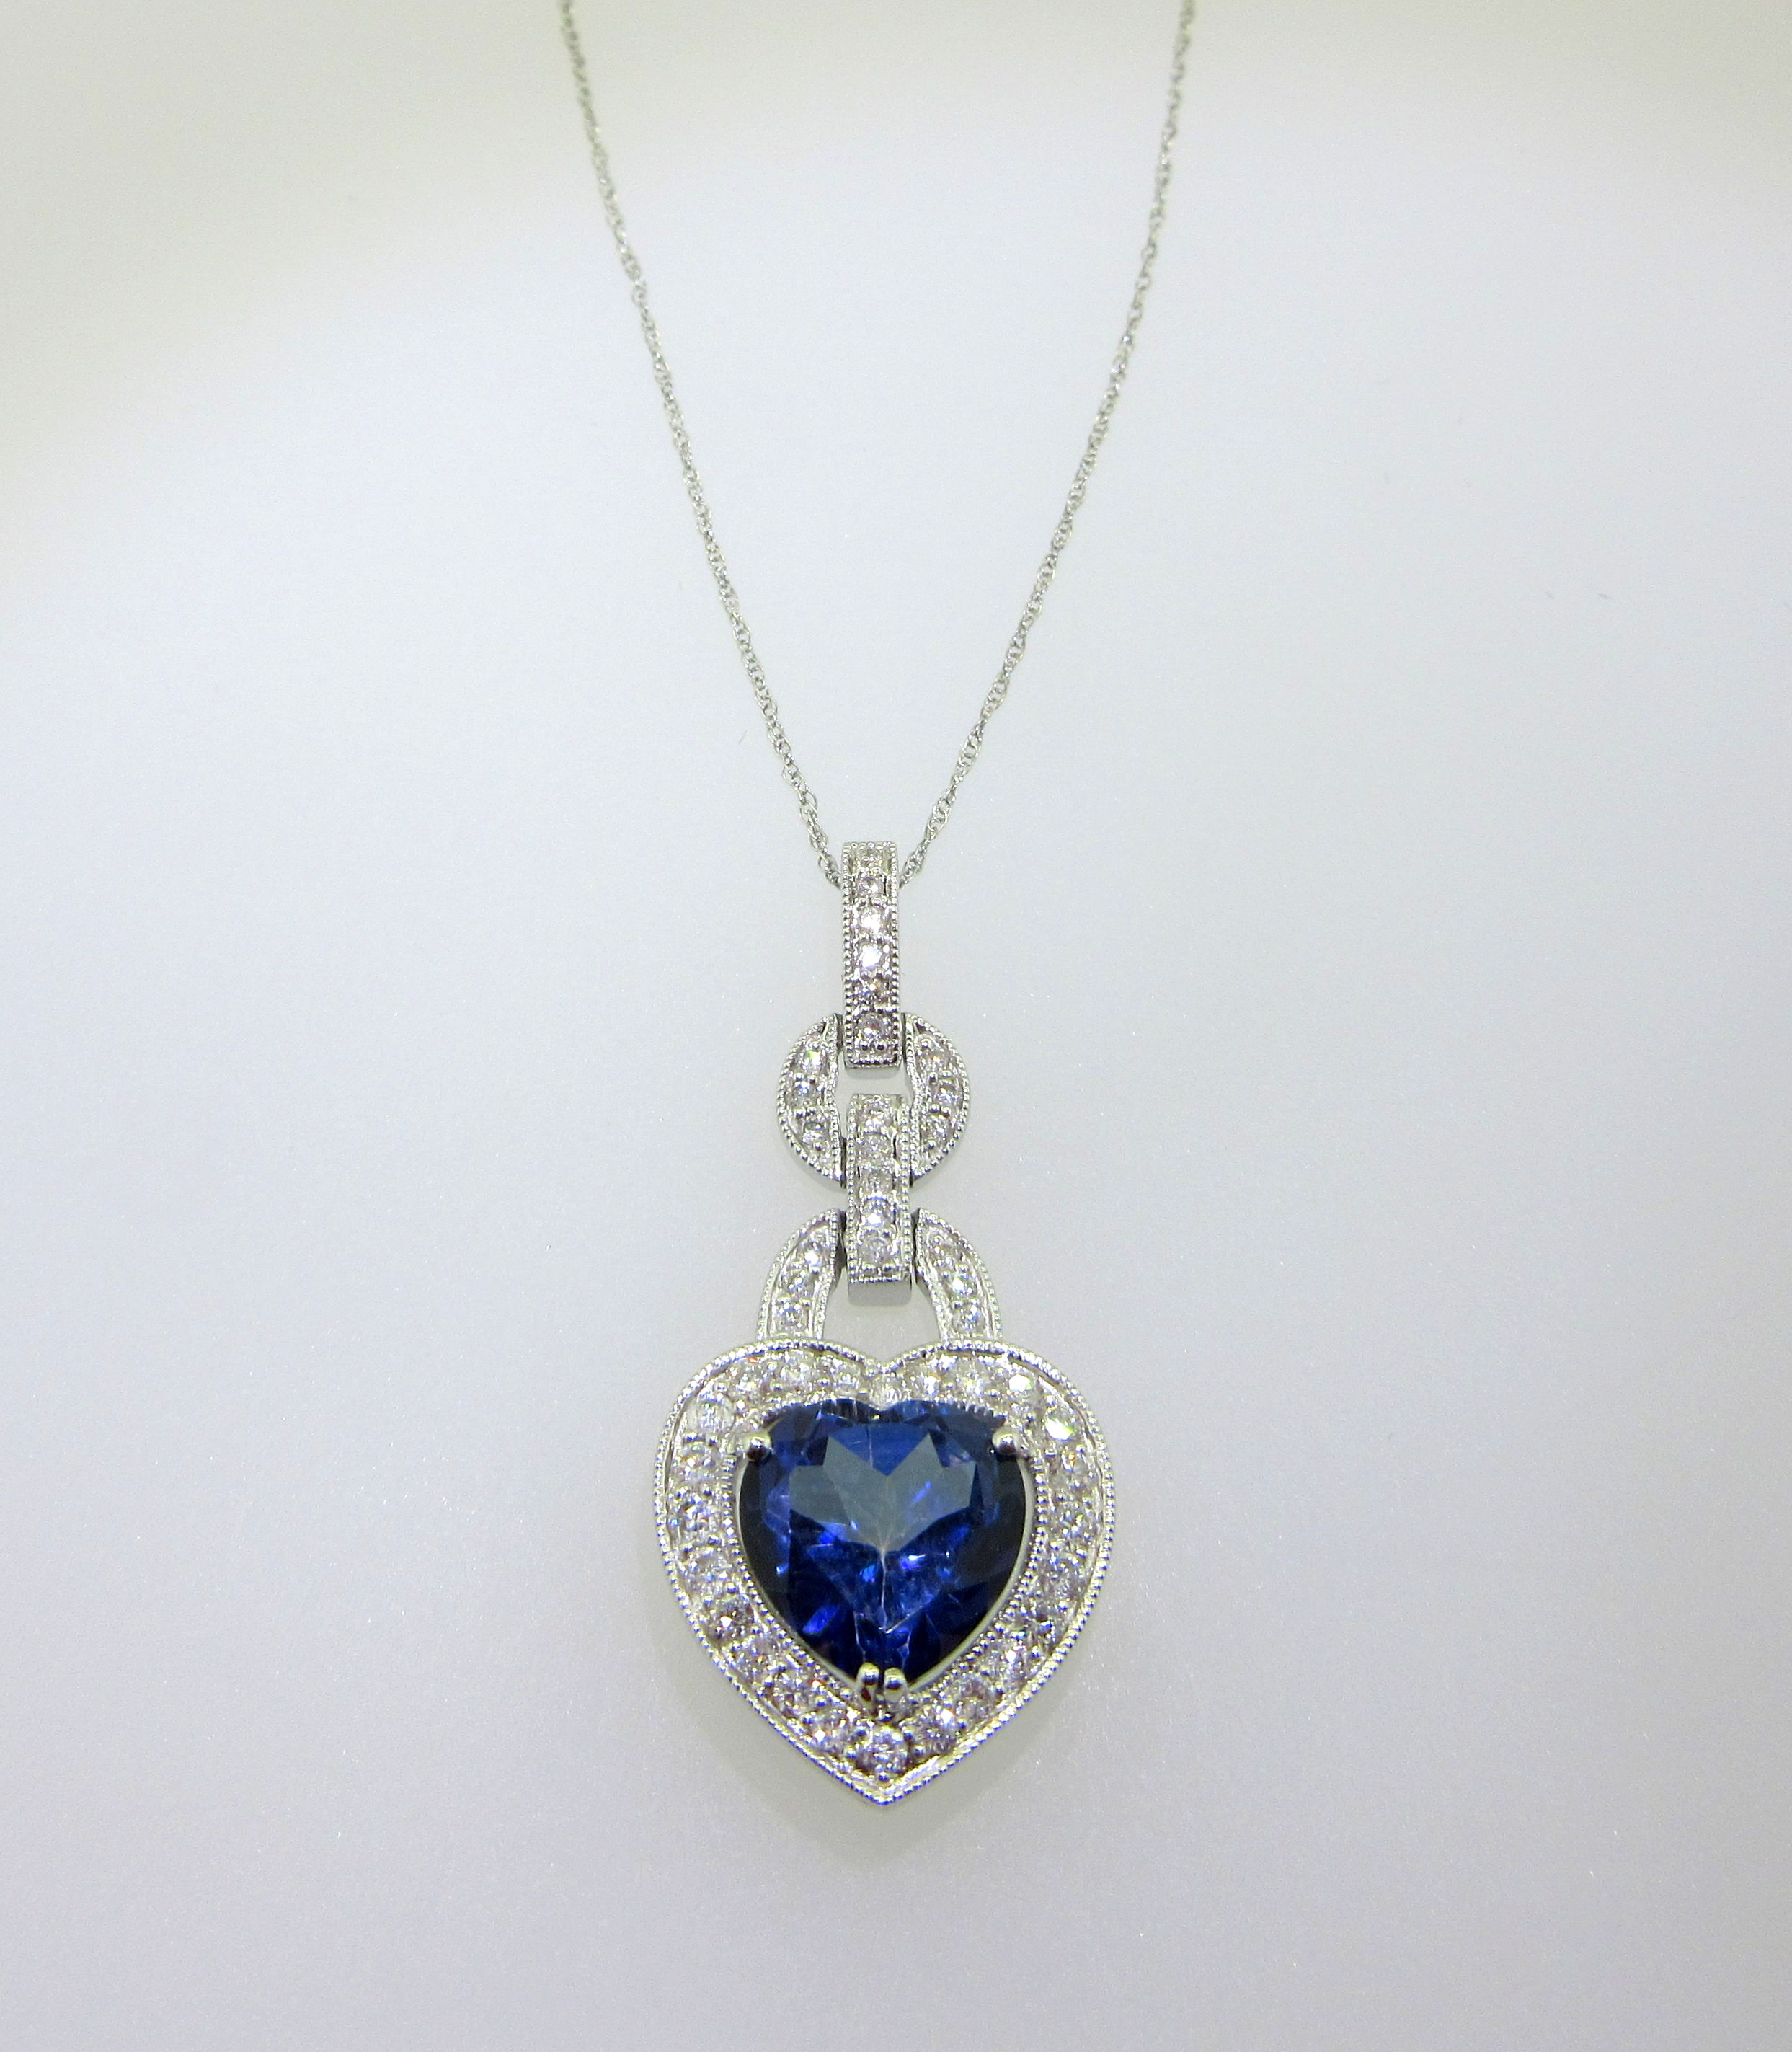 fitzroy gertrude and topaz melbourne pendant contemporary blue handmade img crystal cluster st product jewellery